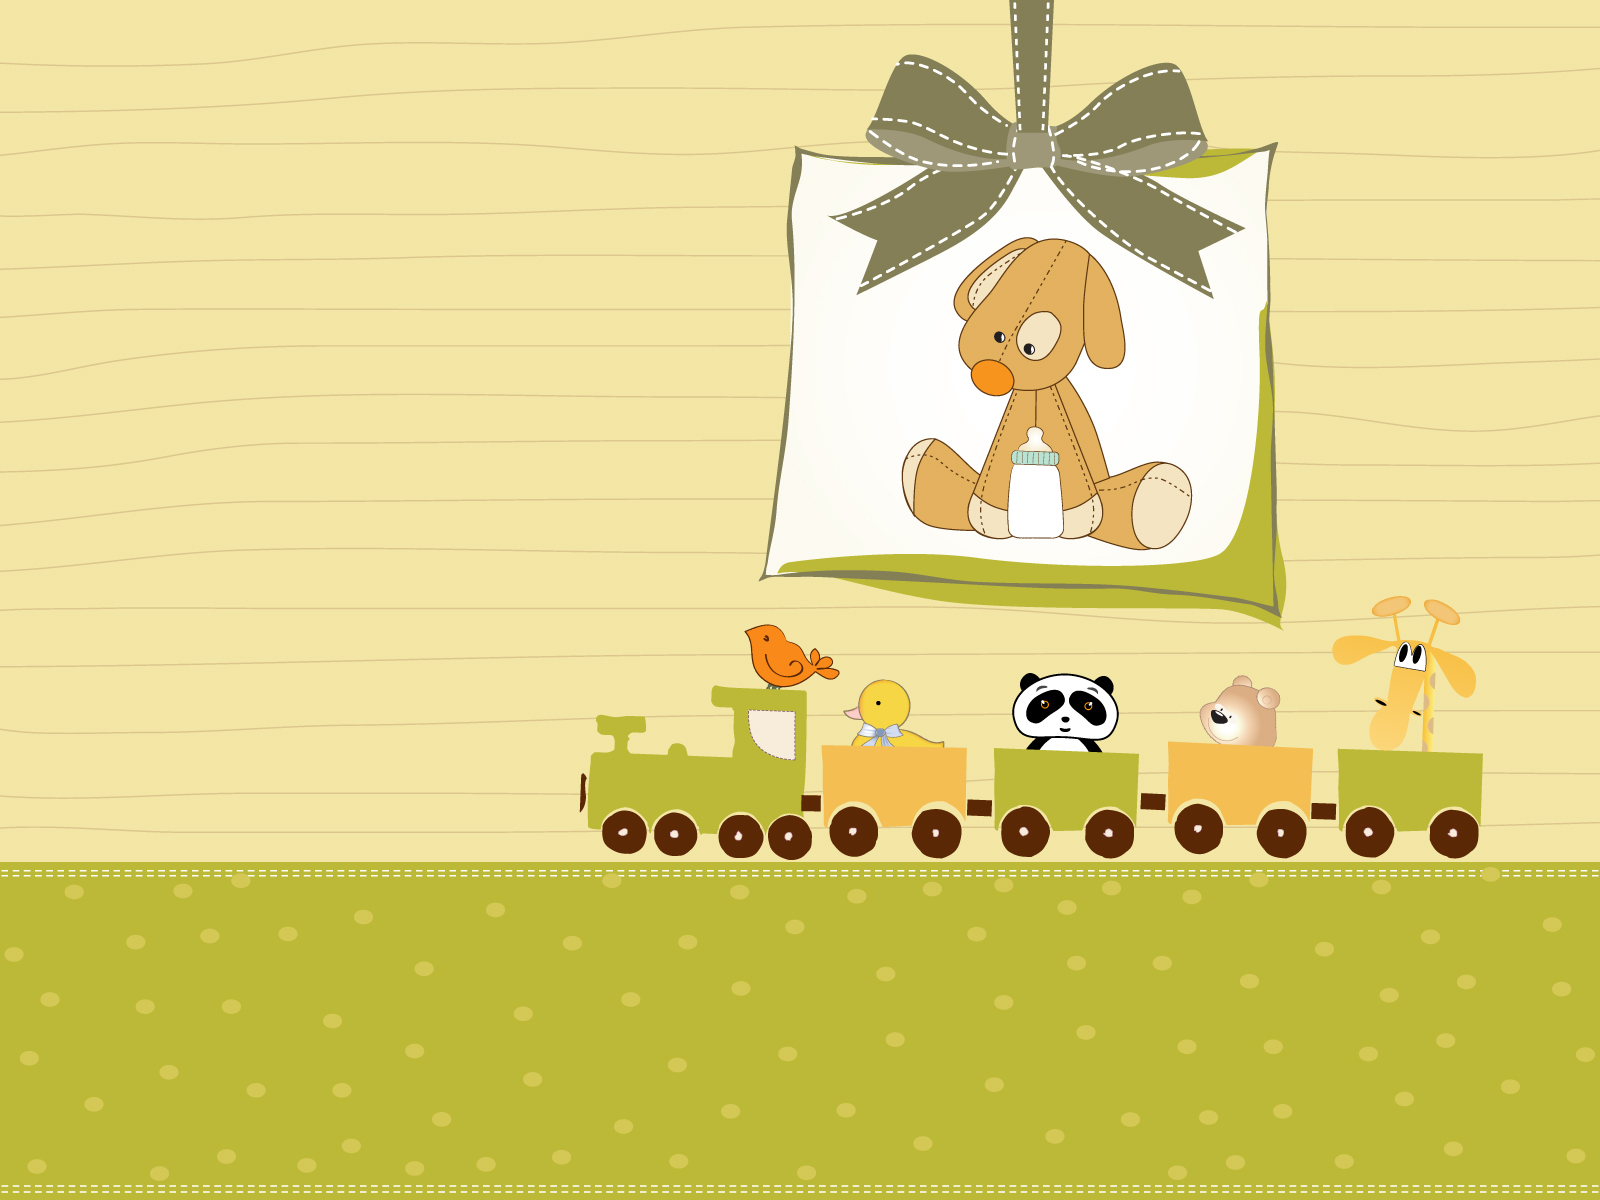 Baby Background Image, Cute Animals, Toys, Train #703